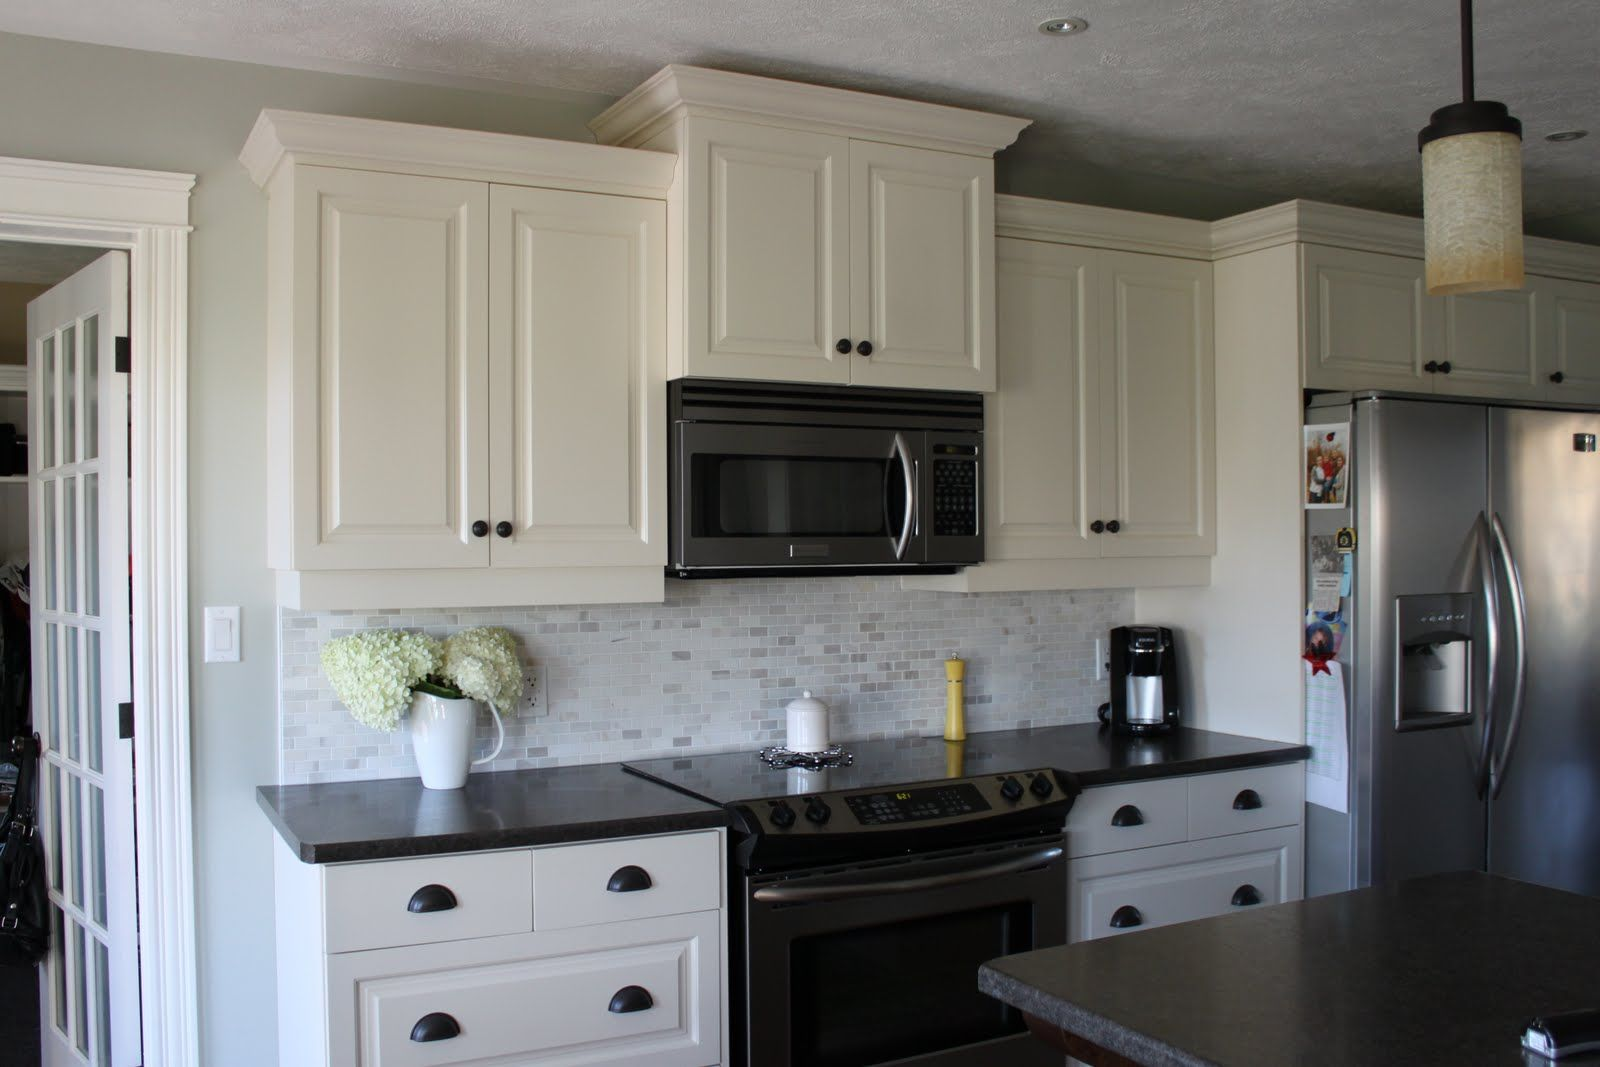 White cabinets with gray backsplash kitchen ideas pinterest white cabinets with gray backsplash dailygadgetfo Image collections